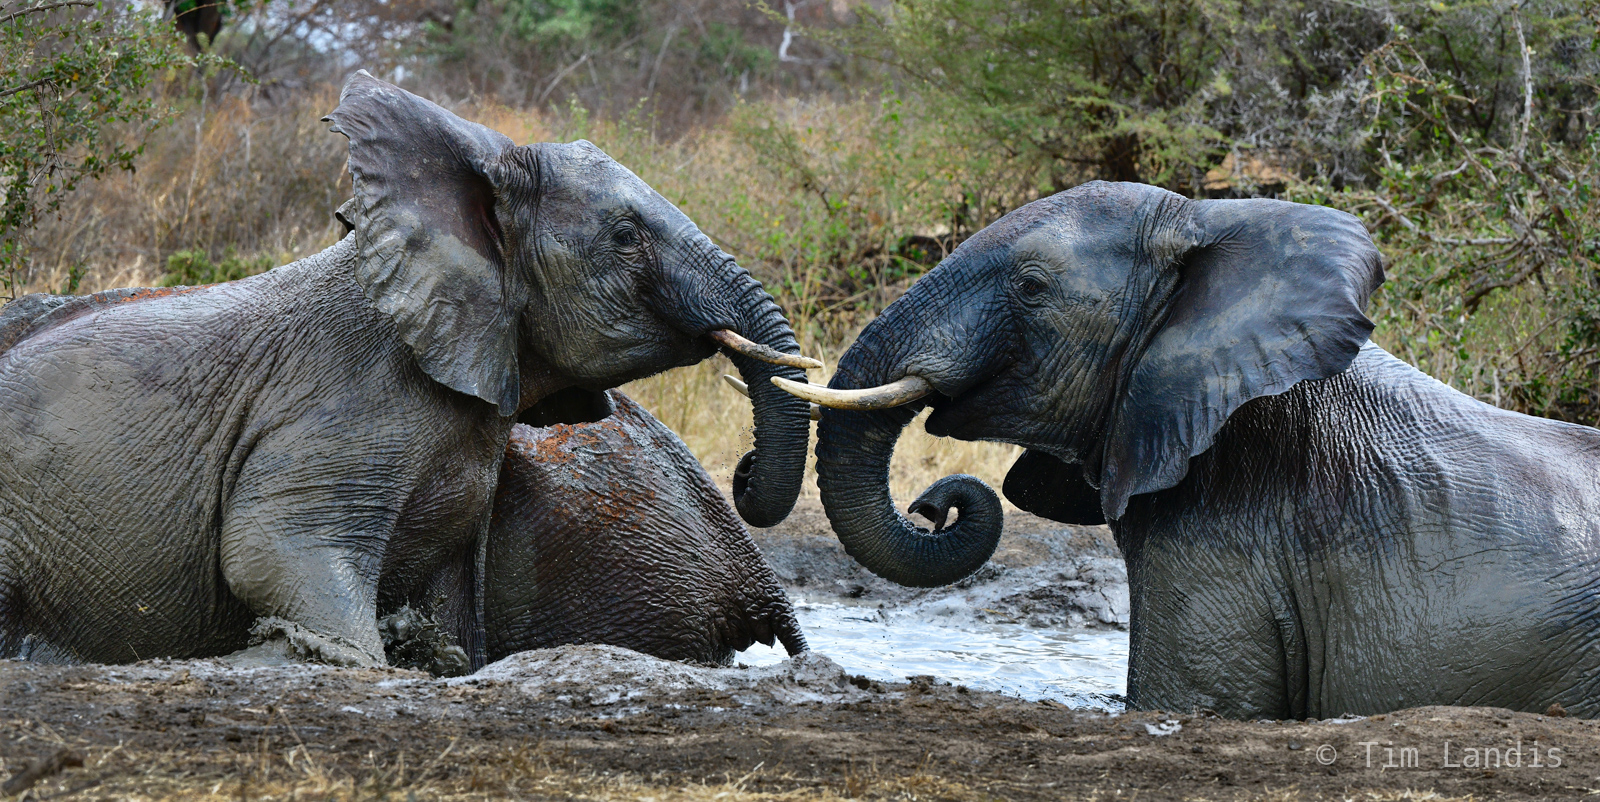 Two elephants facing off, duel, photo